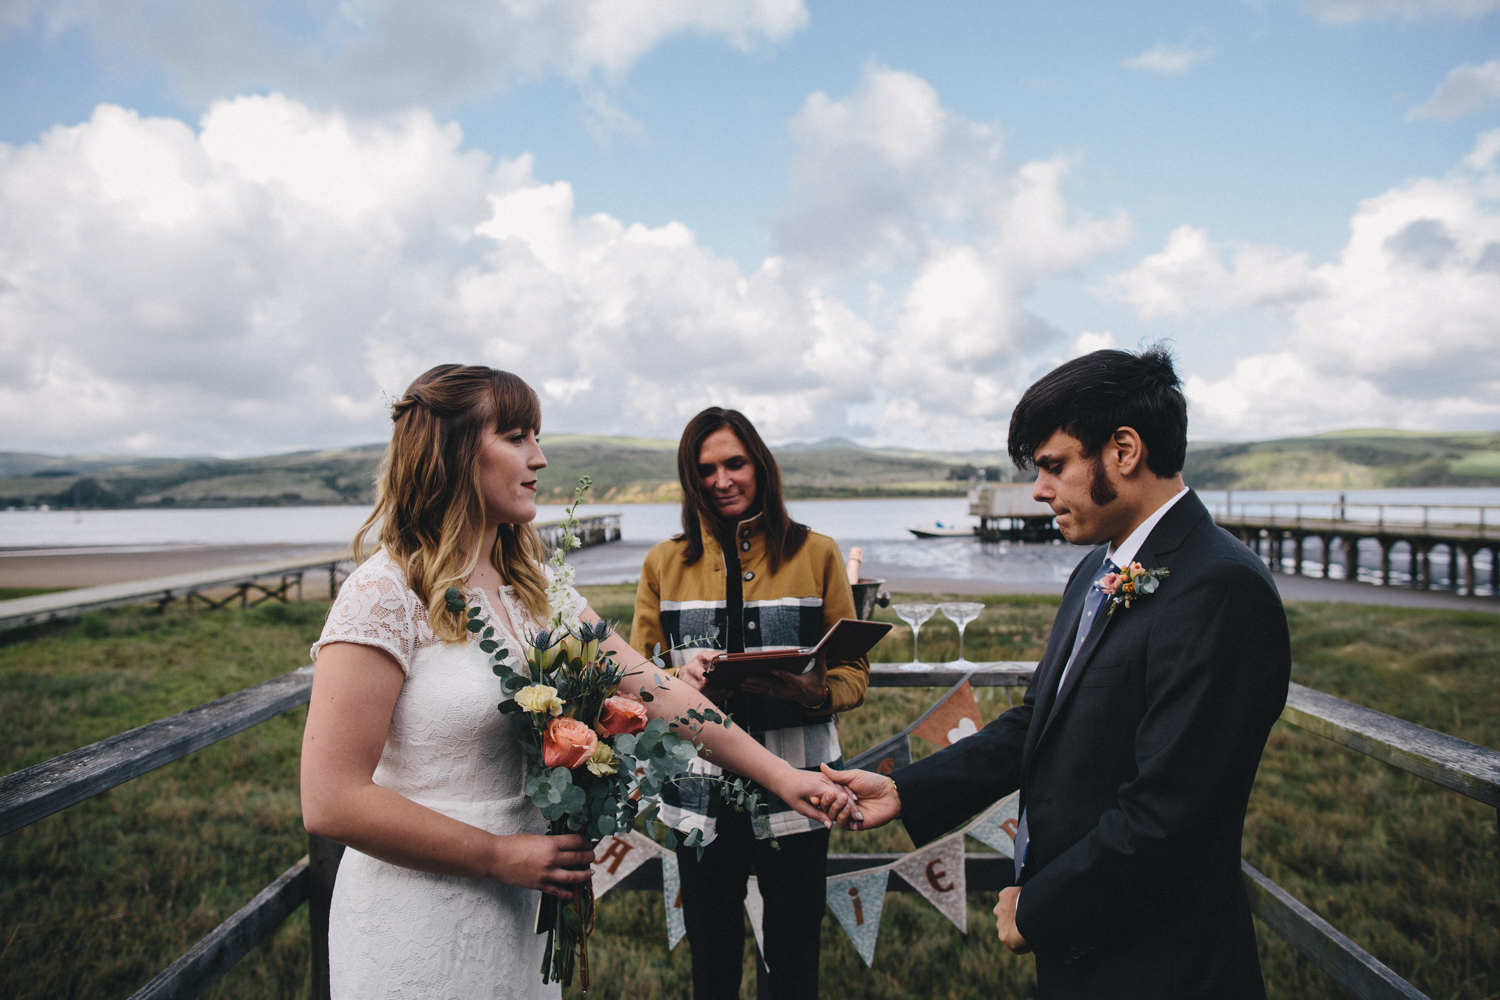 Point Reyes Inverness Wedding Photographer Rachelle Derouin-38.jpg